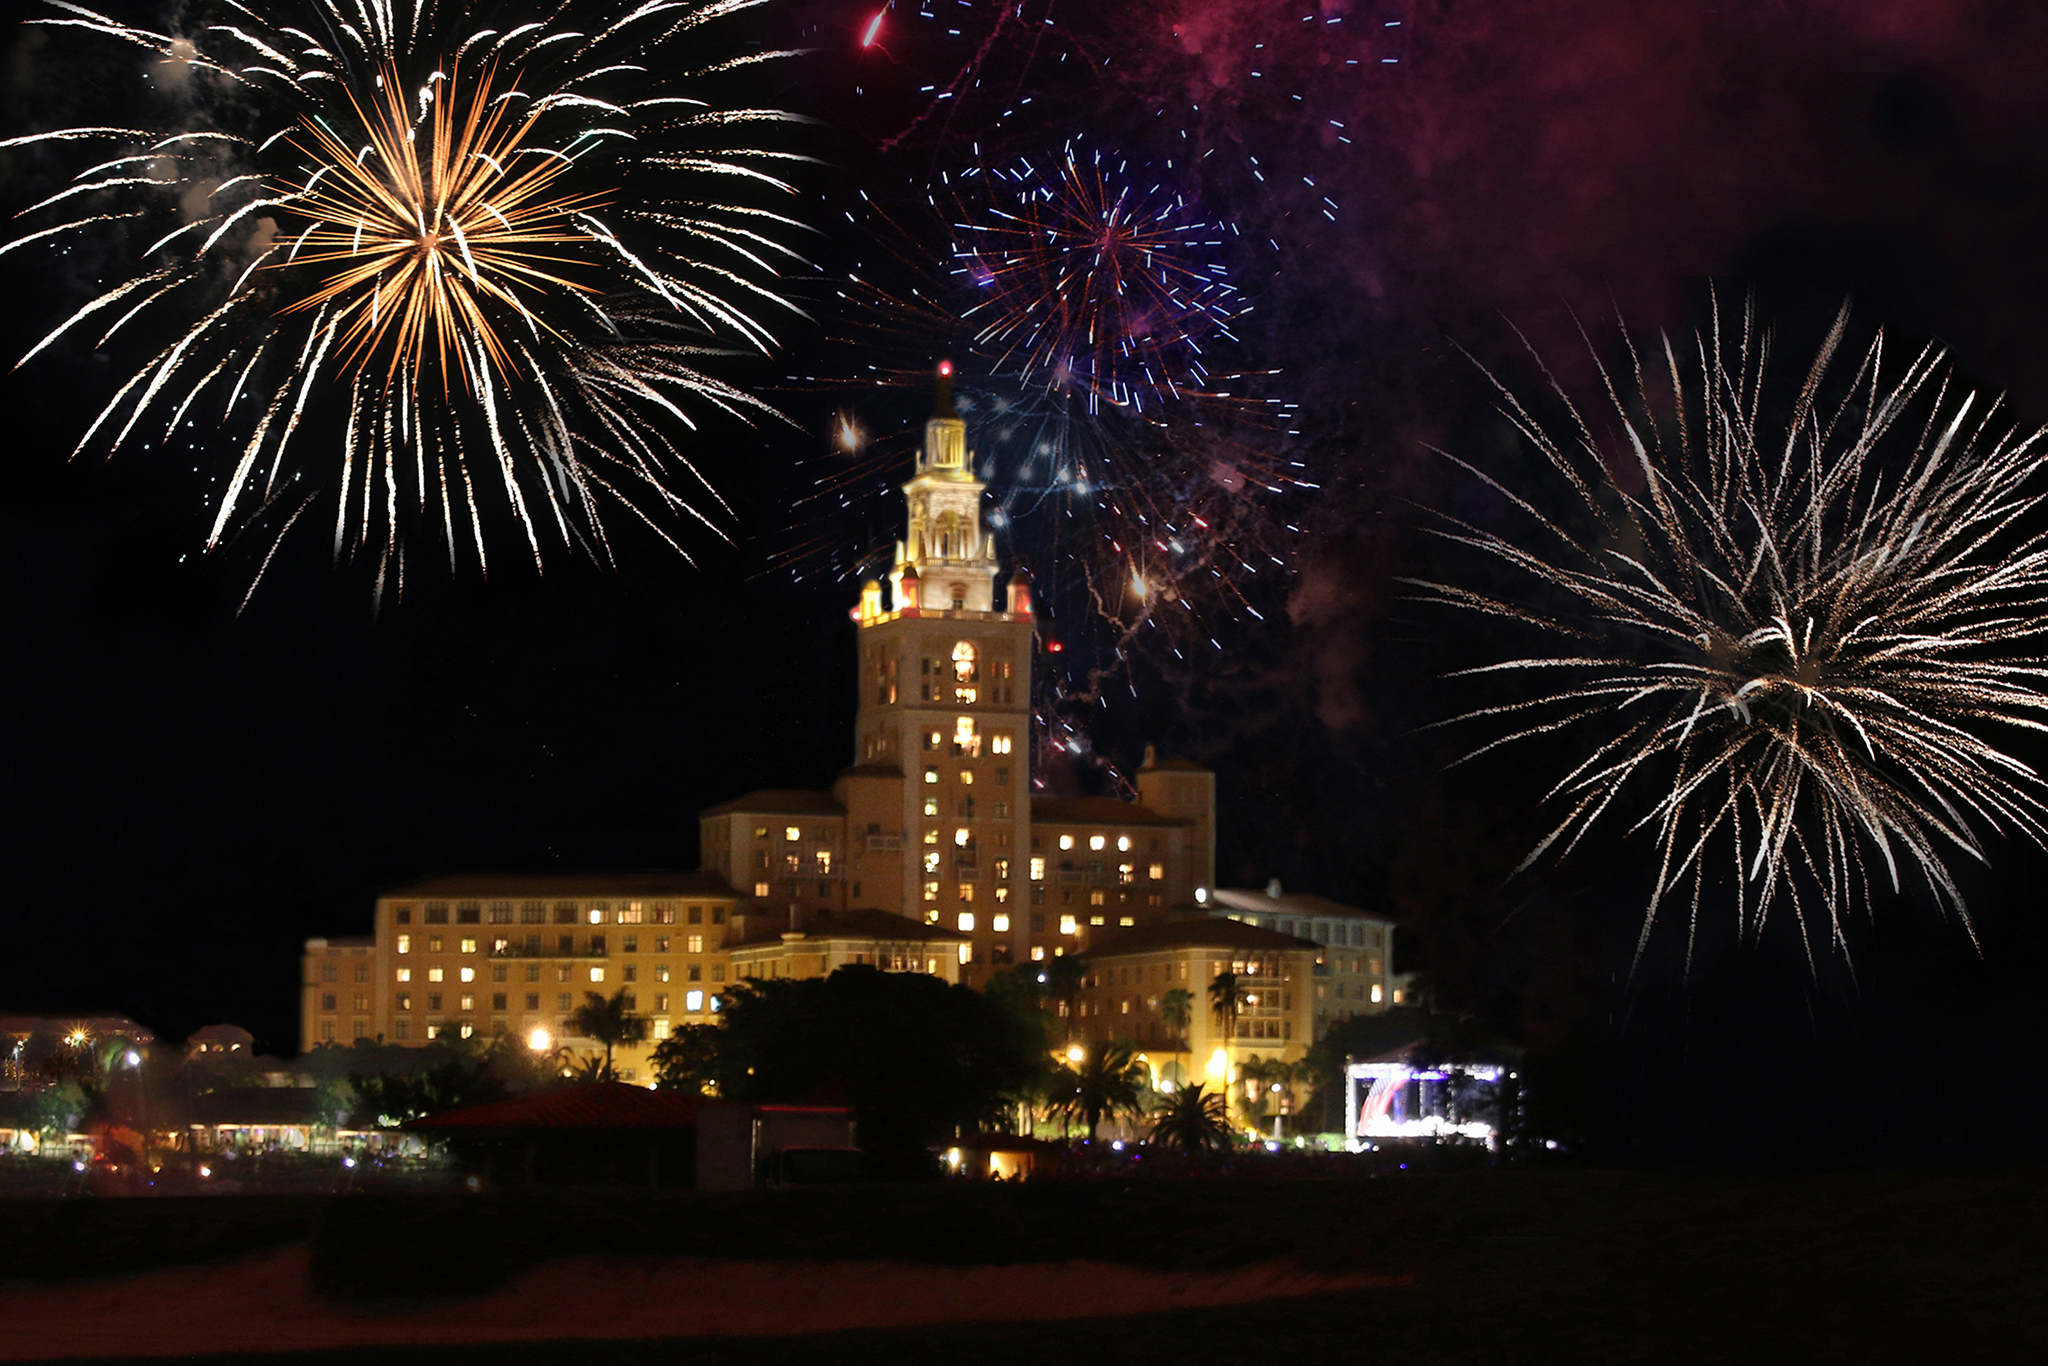 Biltmore Hotel Fourth of July